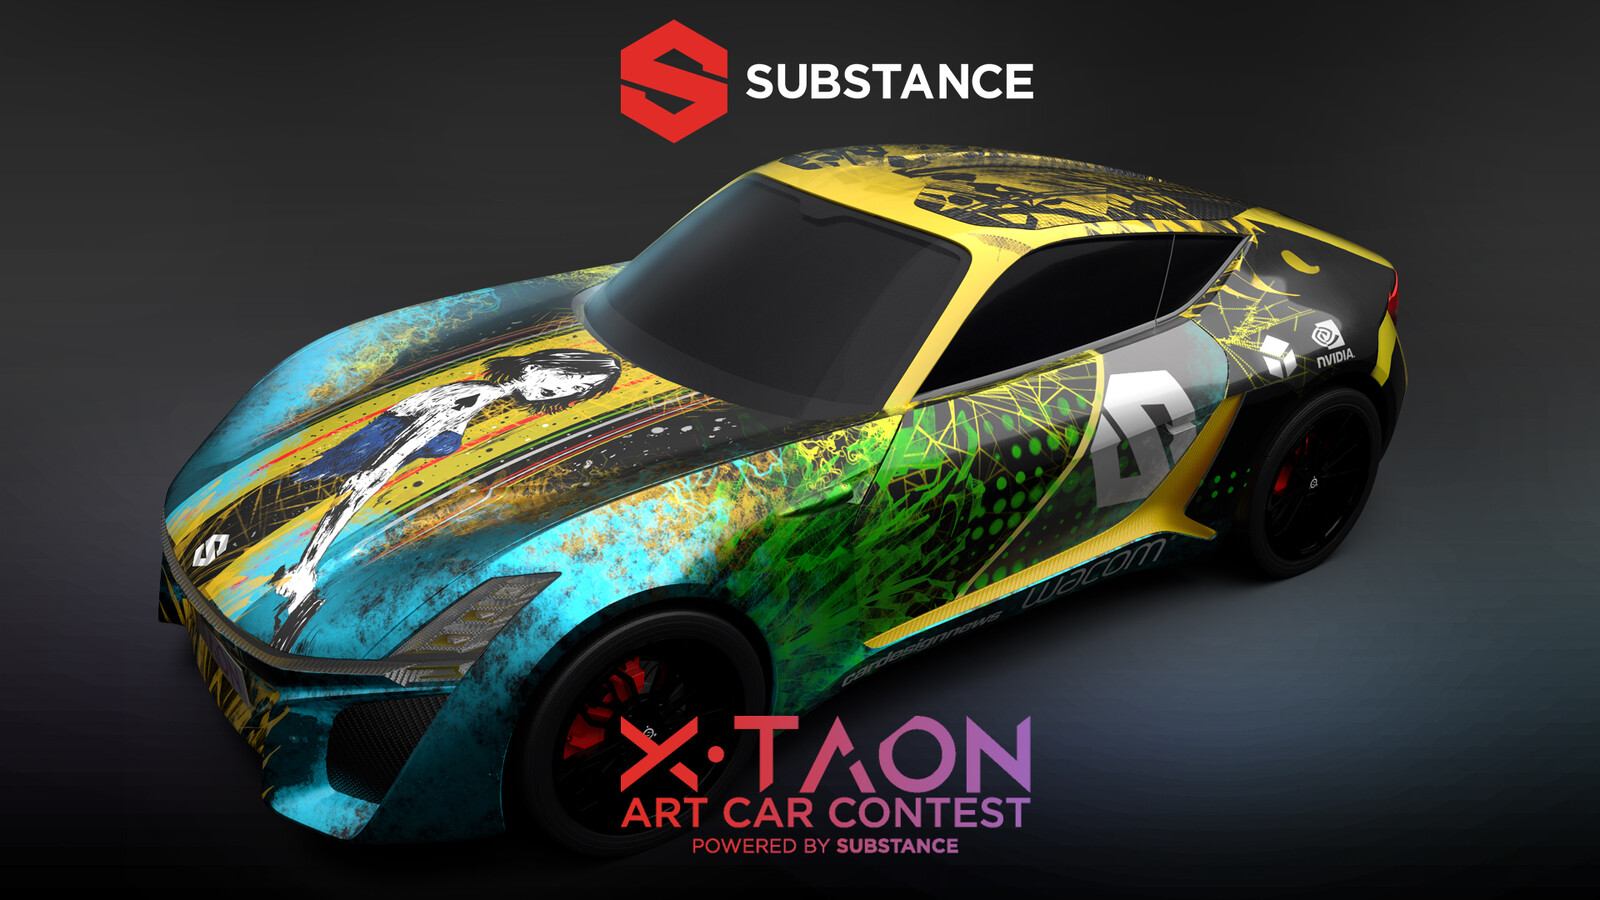 XTAON Art Car Contest Entry